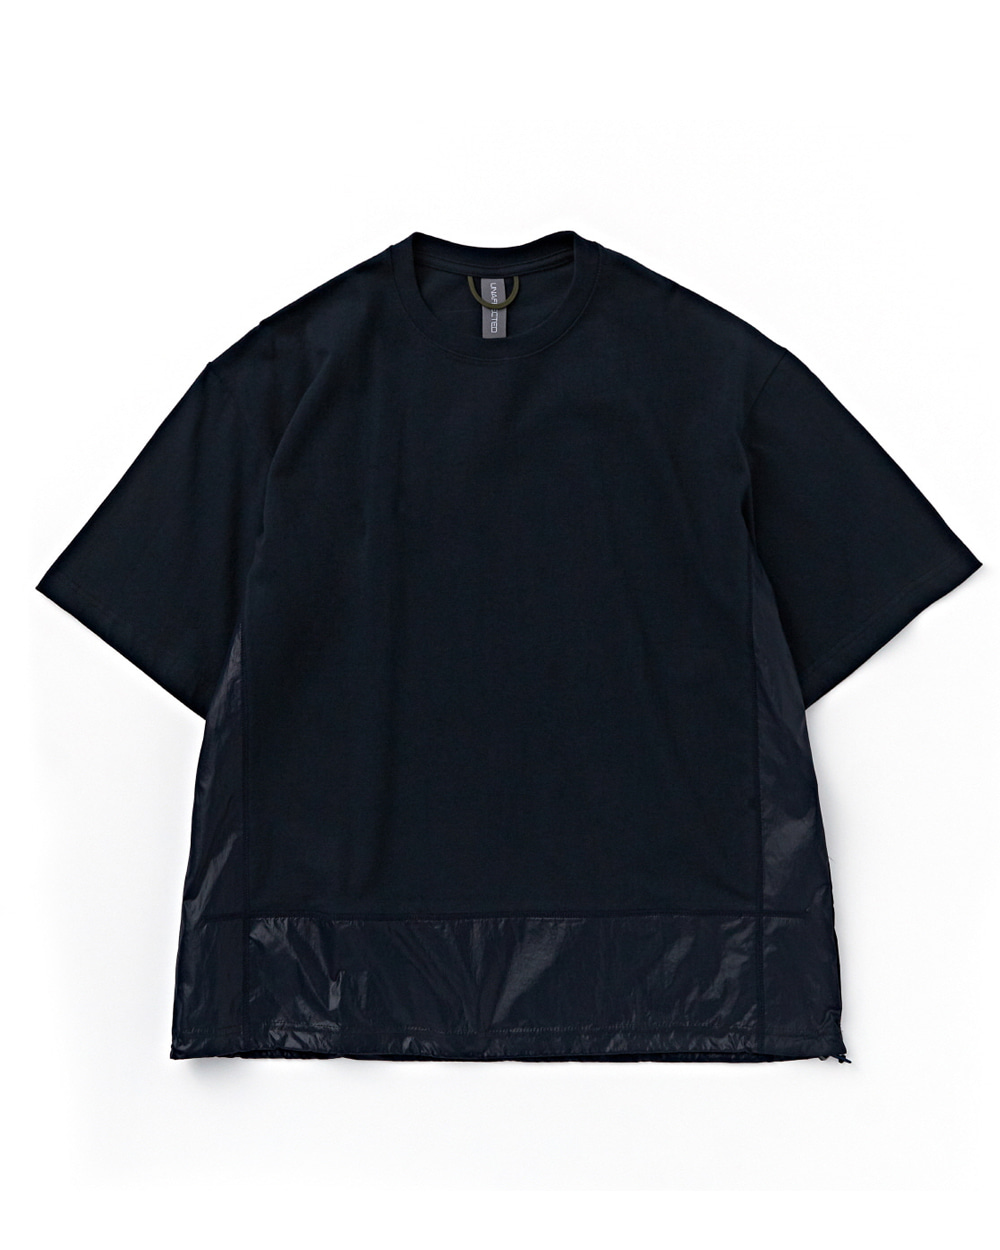 언어펙티드 CONTRAST PANEL T-SHIRT (Navy)